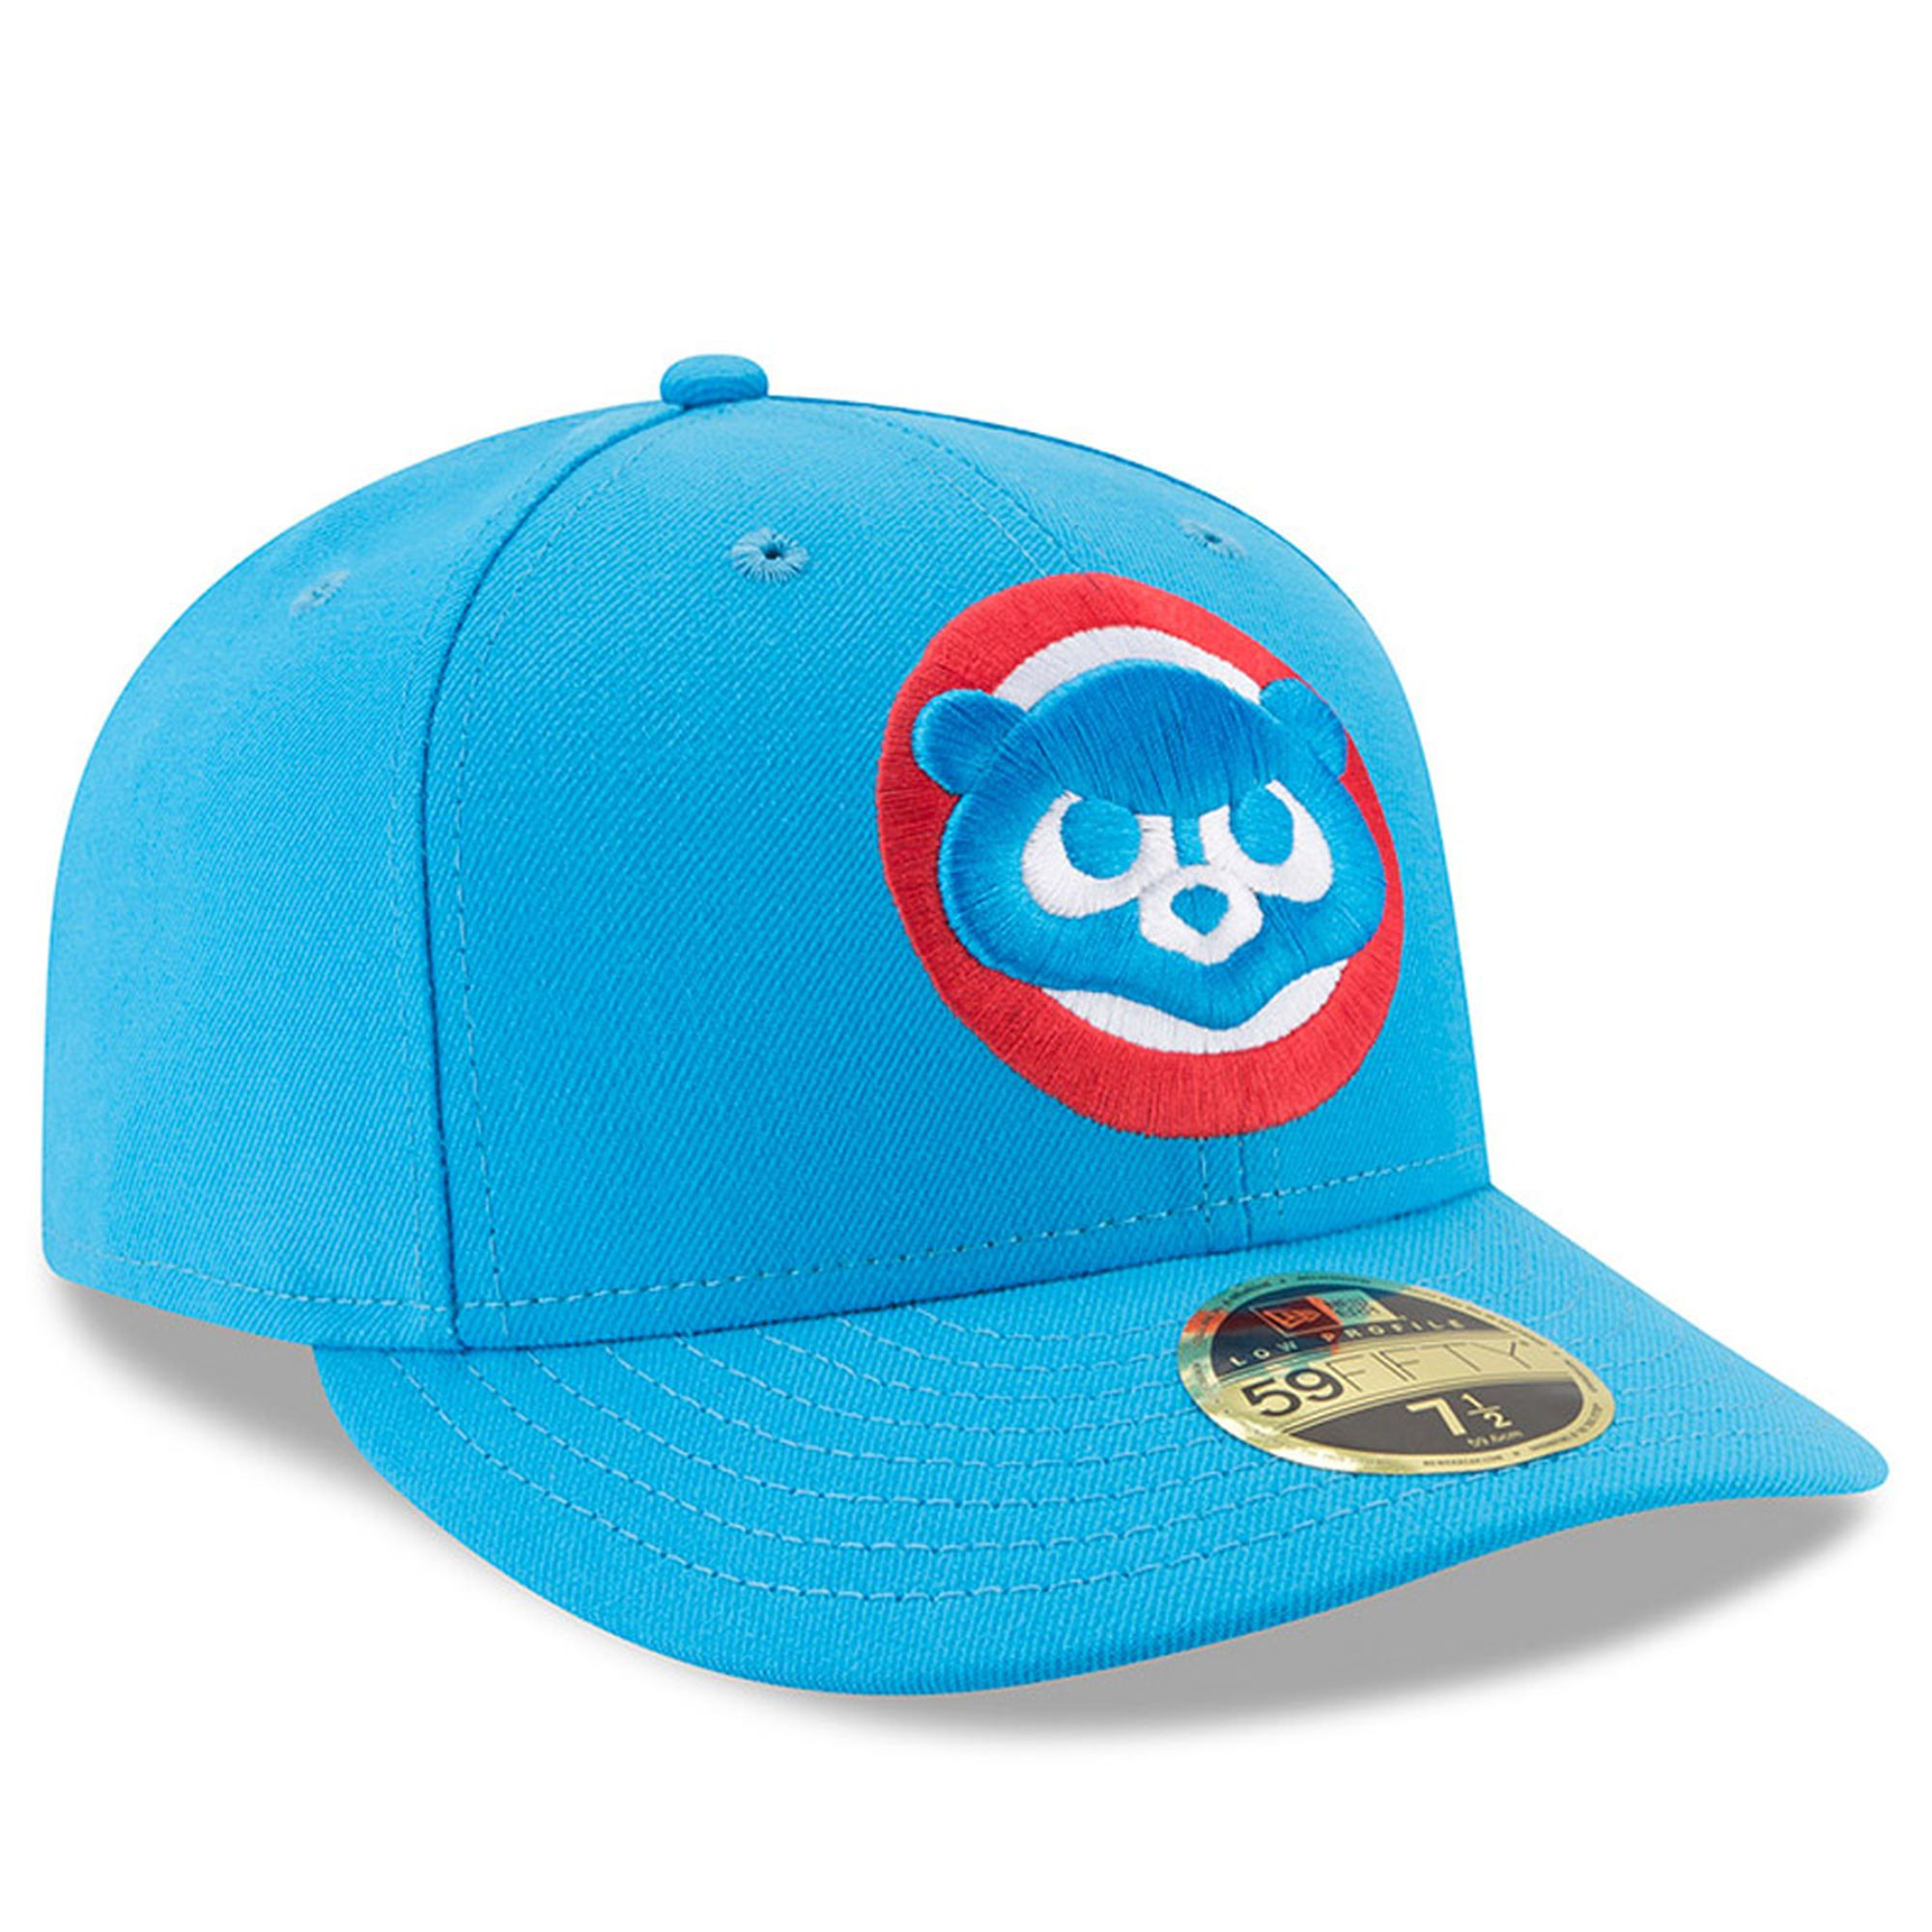 cb37b0eea51 New Era Chicago Cubs Blue 2017 Players Weekend Low Profile 59FIFTY Fitted  Hat